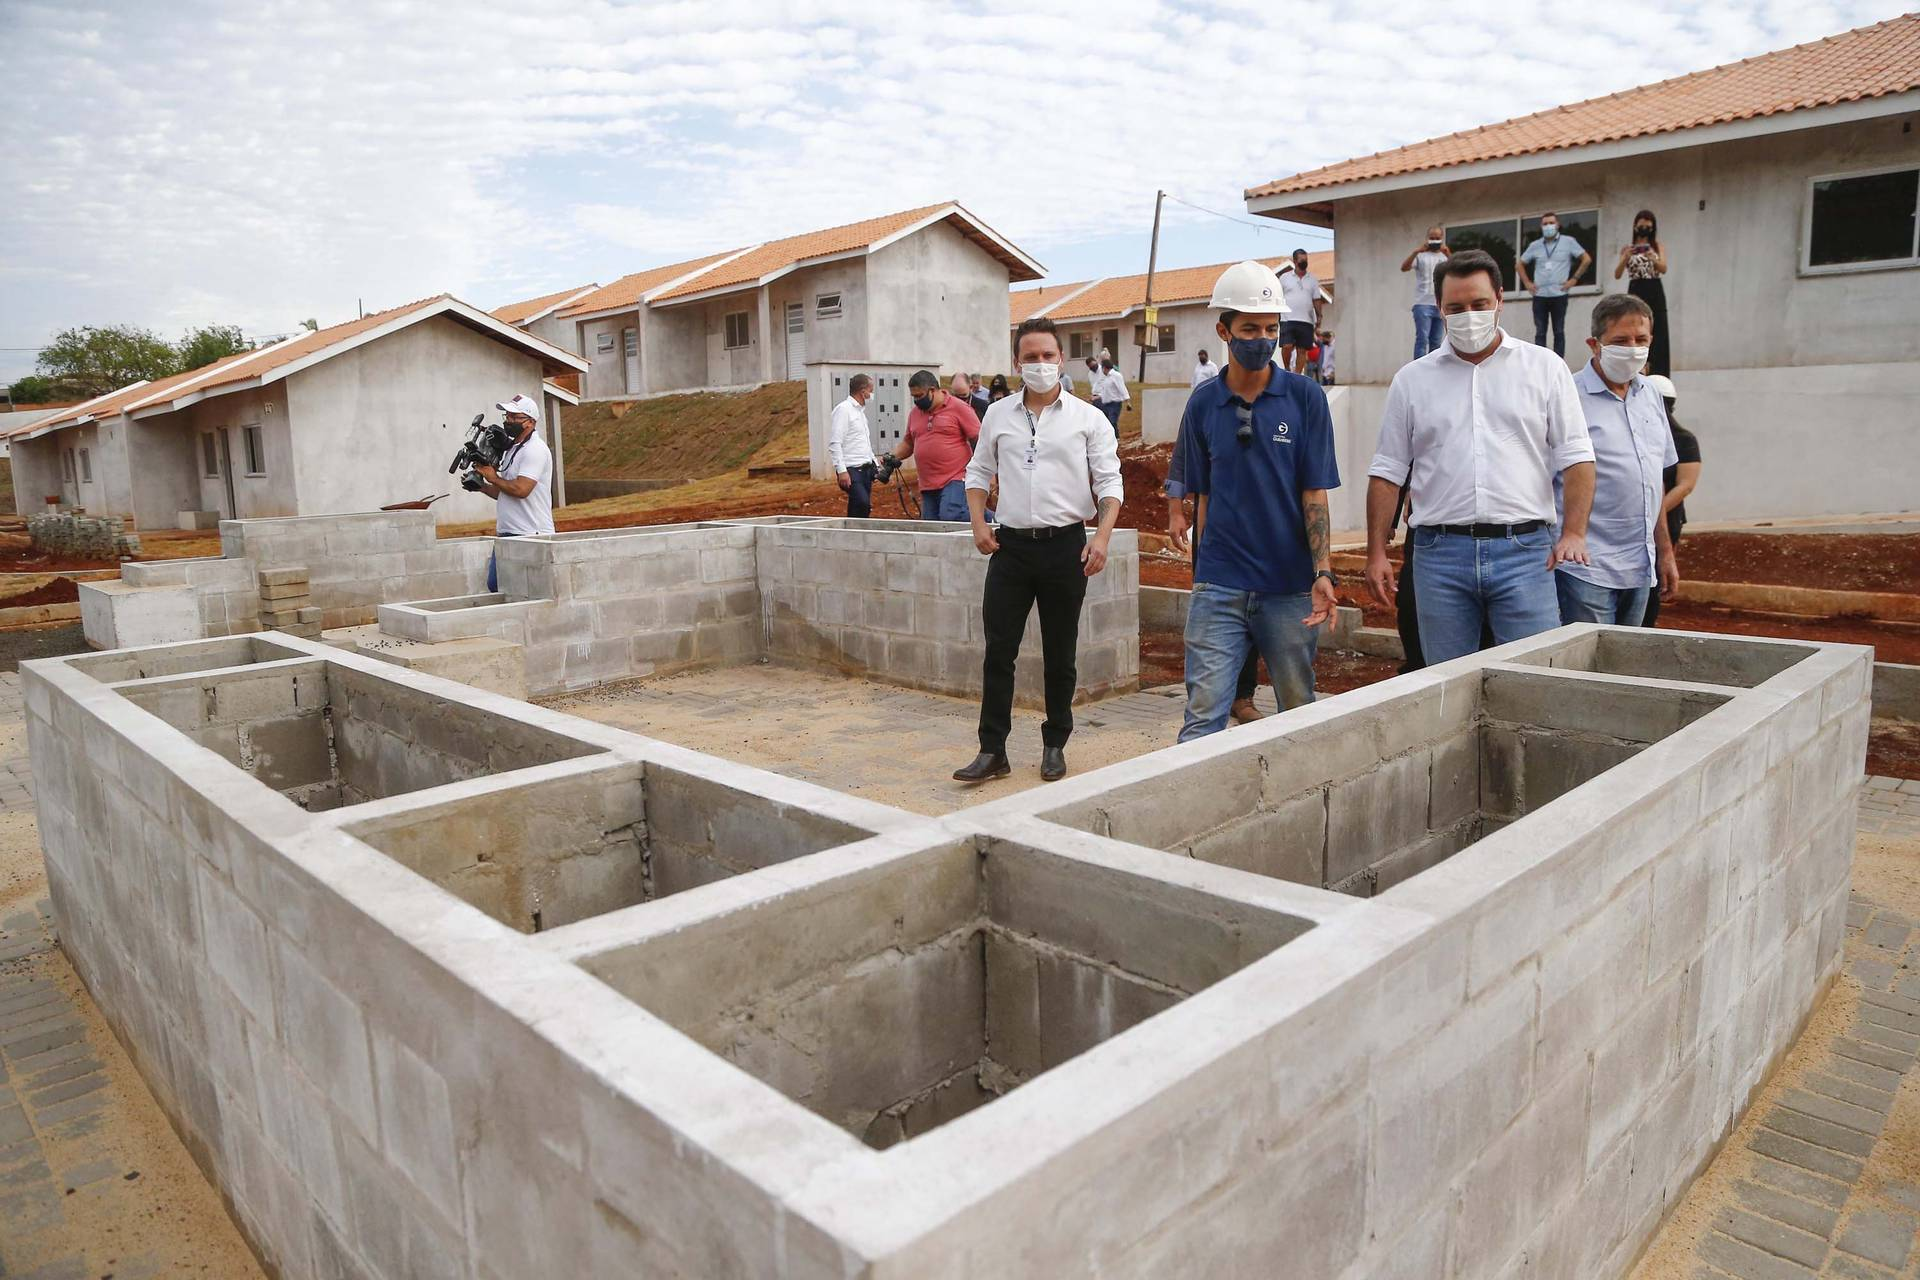 Governador vistoria obras no Condomínio do Idoso de Foz